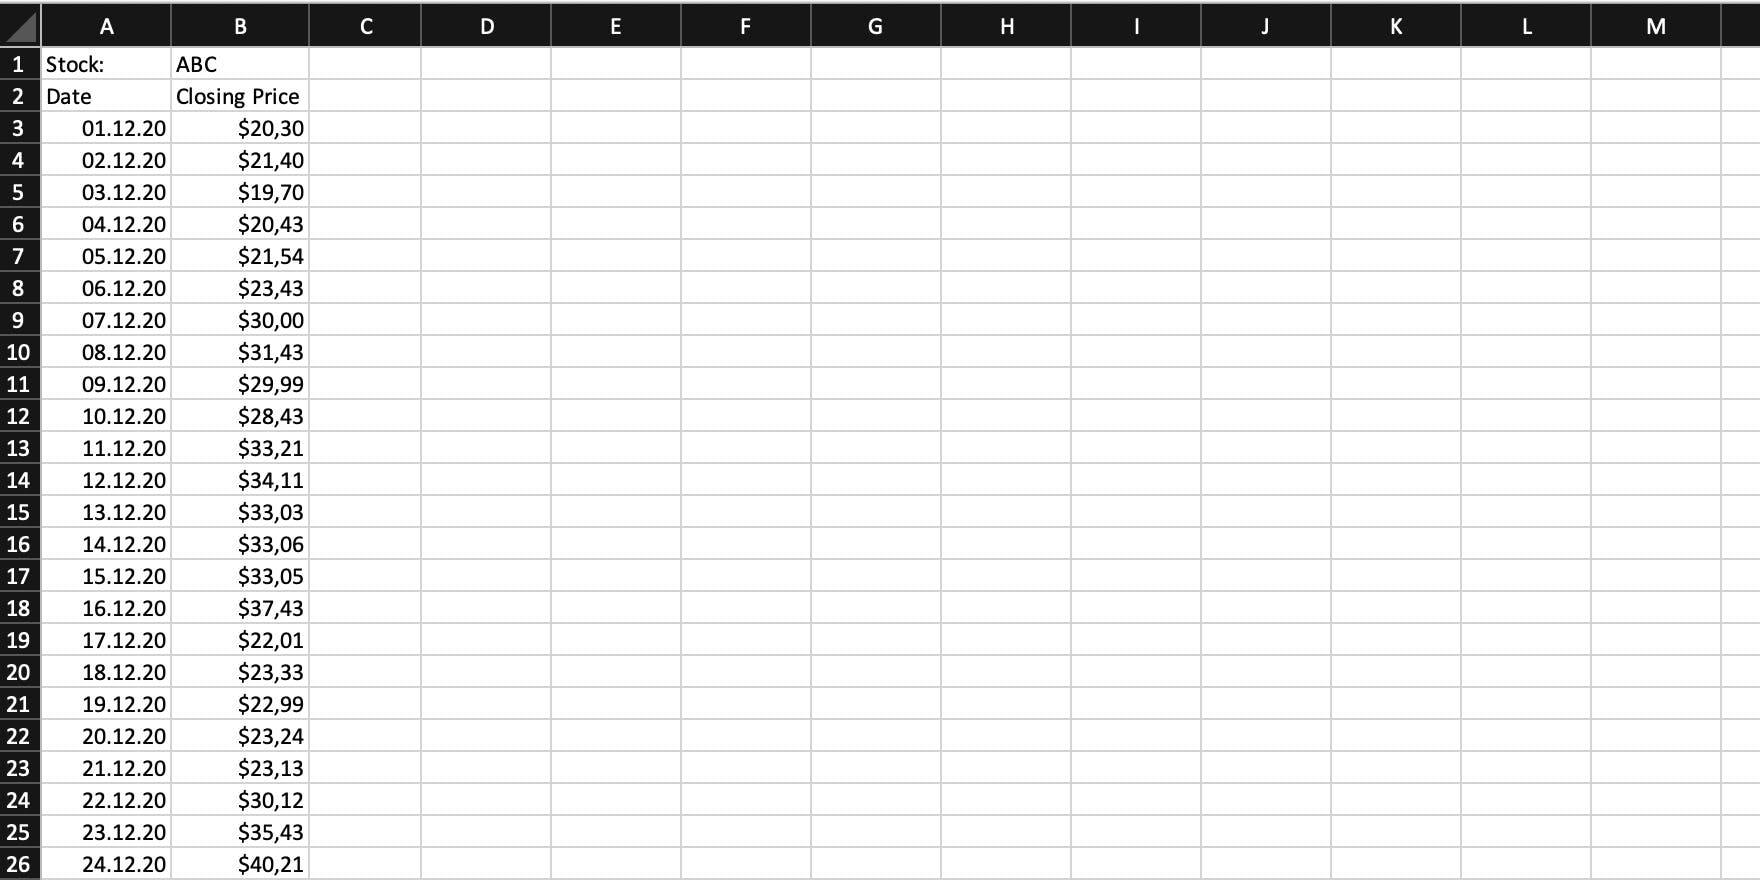 The basic setup to calculate moving averages in Excel